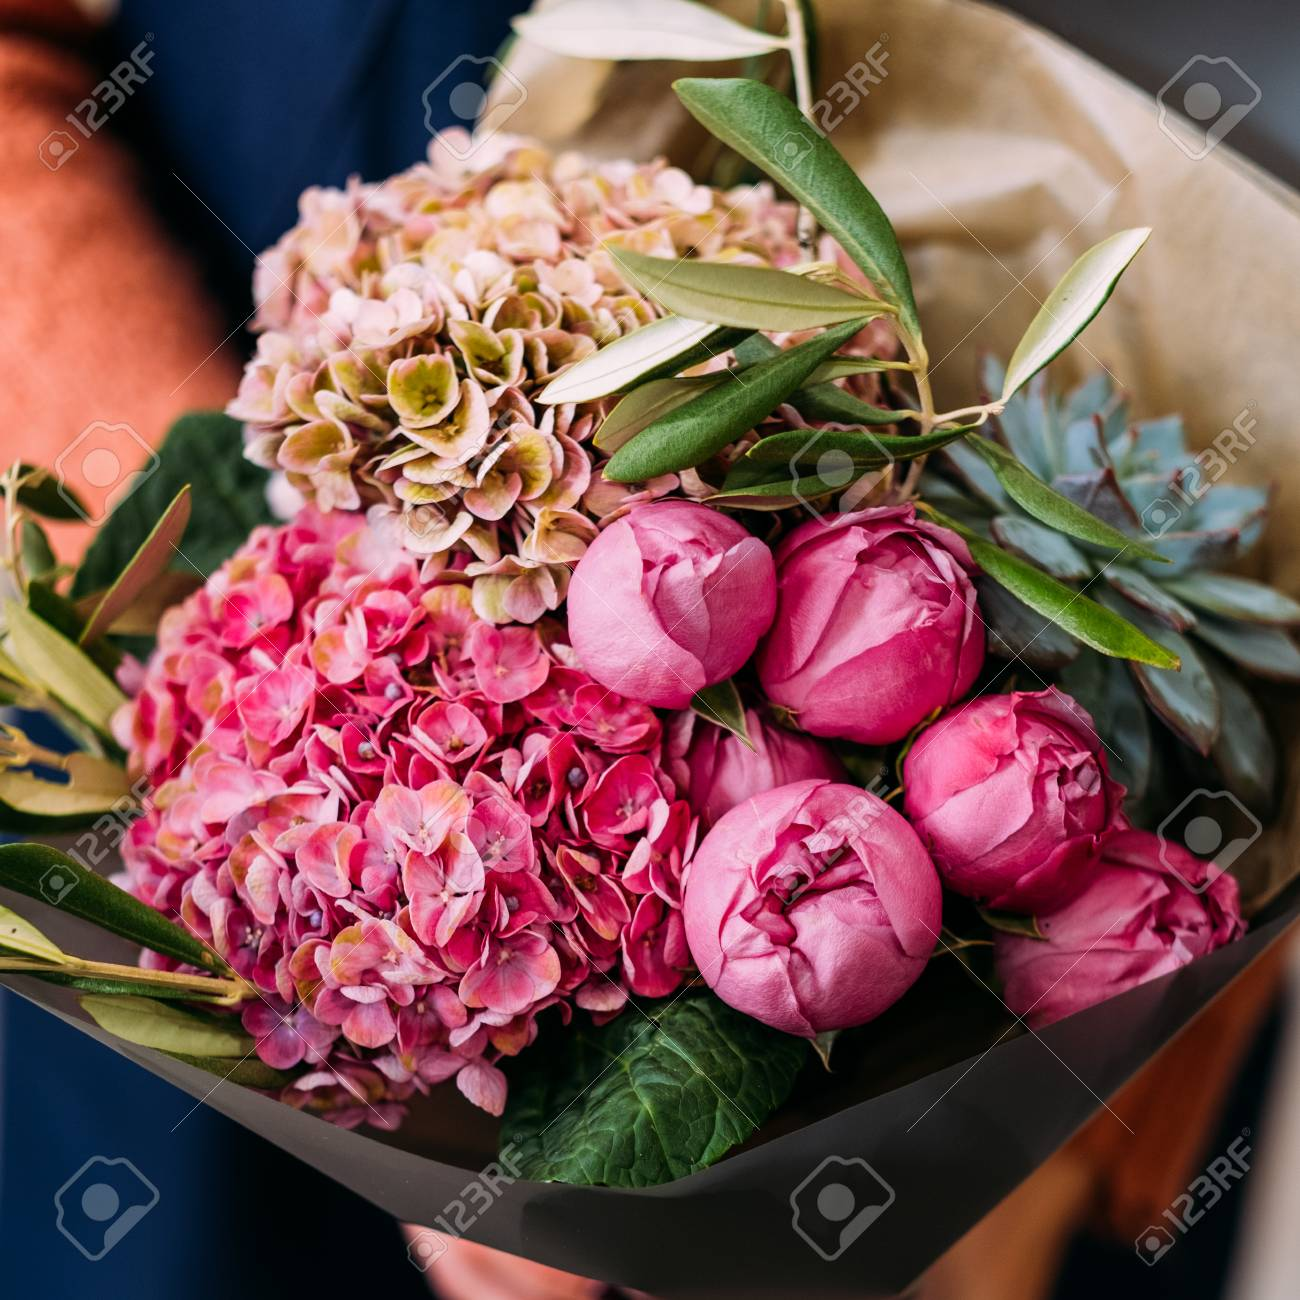 Luxurious bouquet of various flowers as an anniversary gift